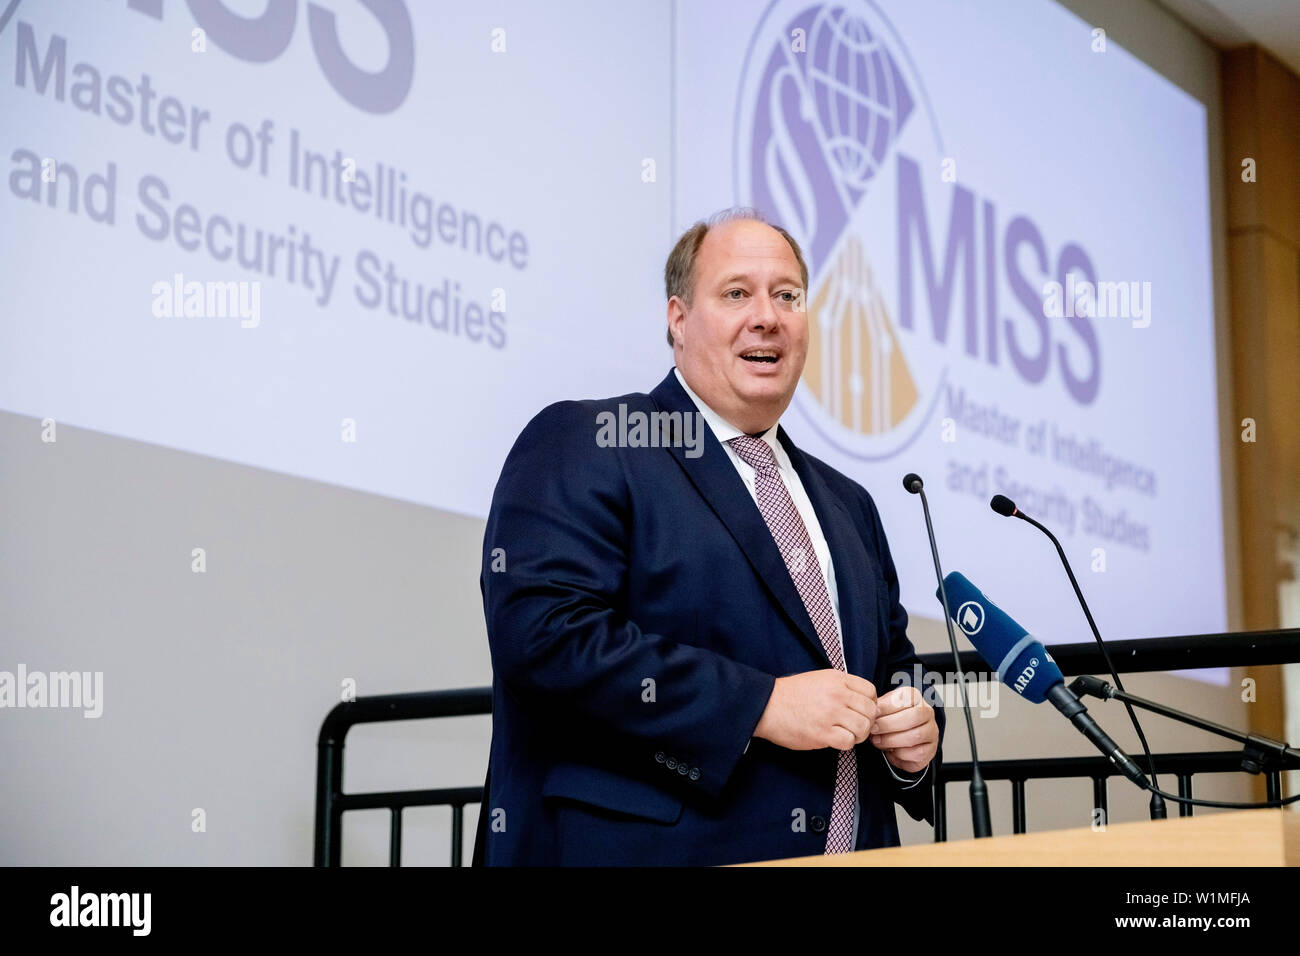 """Berlin, Germany. 03rd July, 2019. Helge Braun (CDU), head of the Federal Chancellery, speaks at the opening ceremony of the Master's programme """"Intelligence and Security Studies"""" for secret service employees at the headquarters of the Federal Intelligence Service (BND). Credit: Christoph Soeder/dpa/Alamy Live News Stock Photo"""